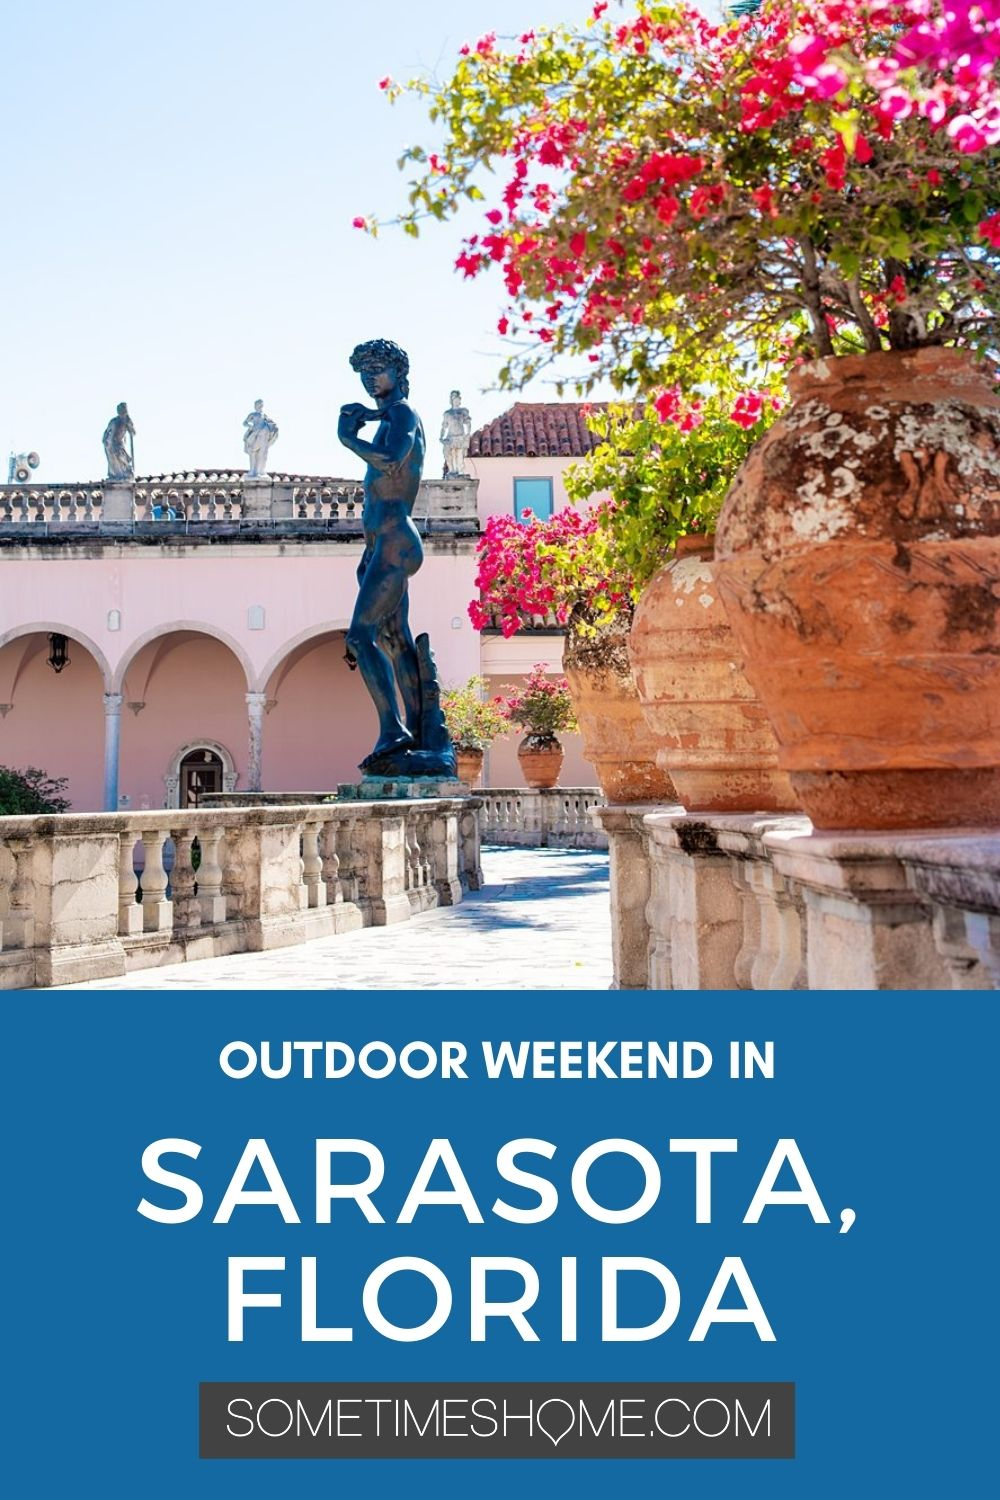 Outdoor weekend in Sarasota, Florida, including an image at the Art Gallery at The Ringling Museum.